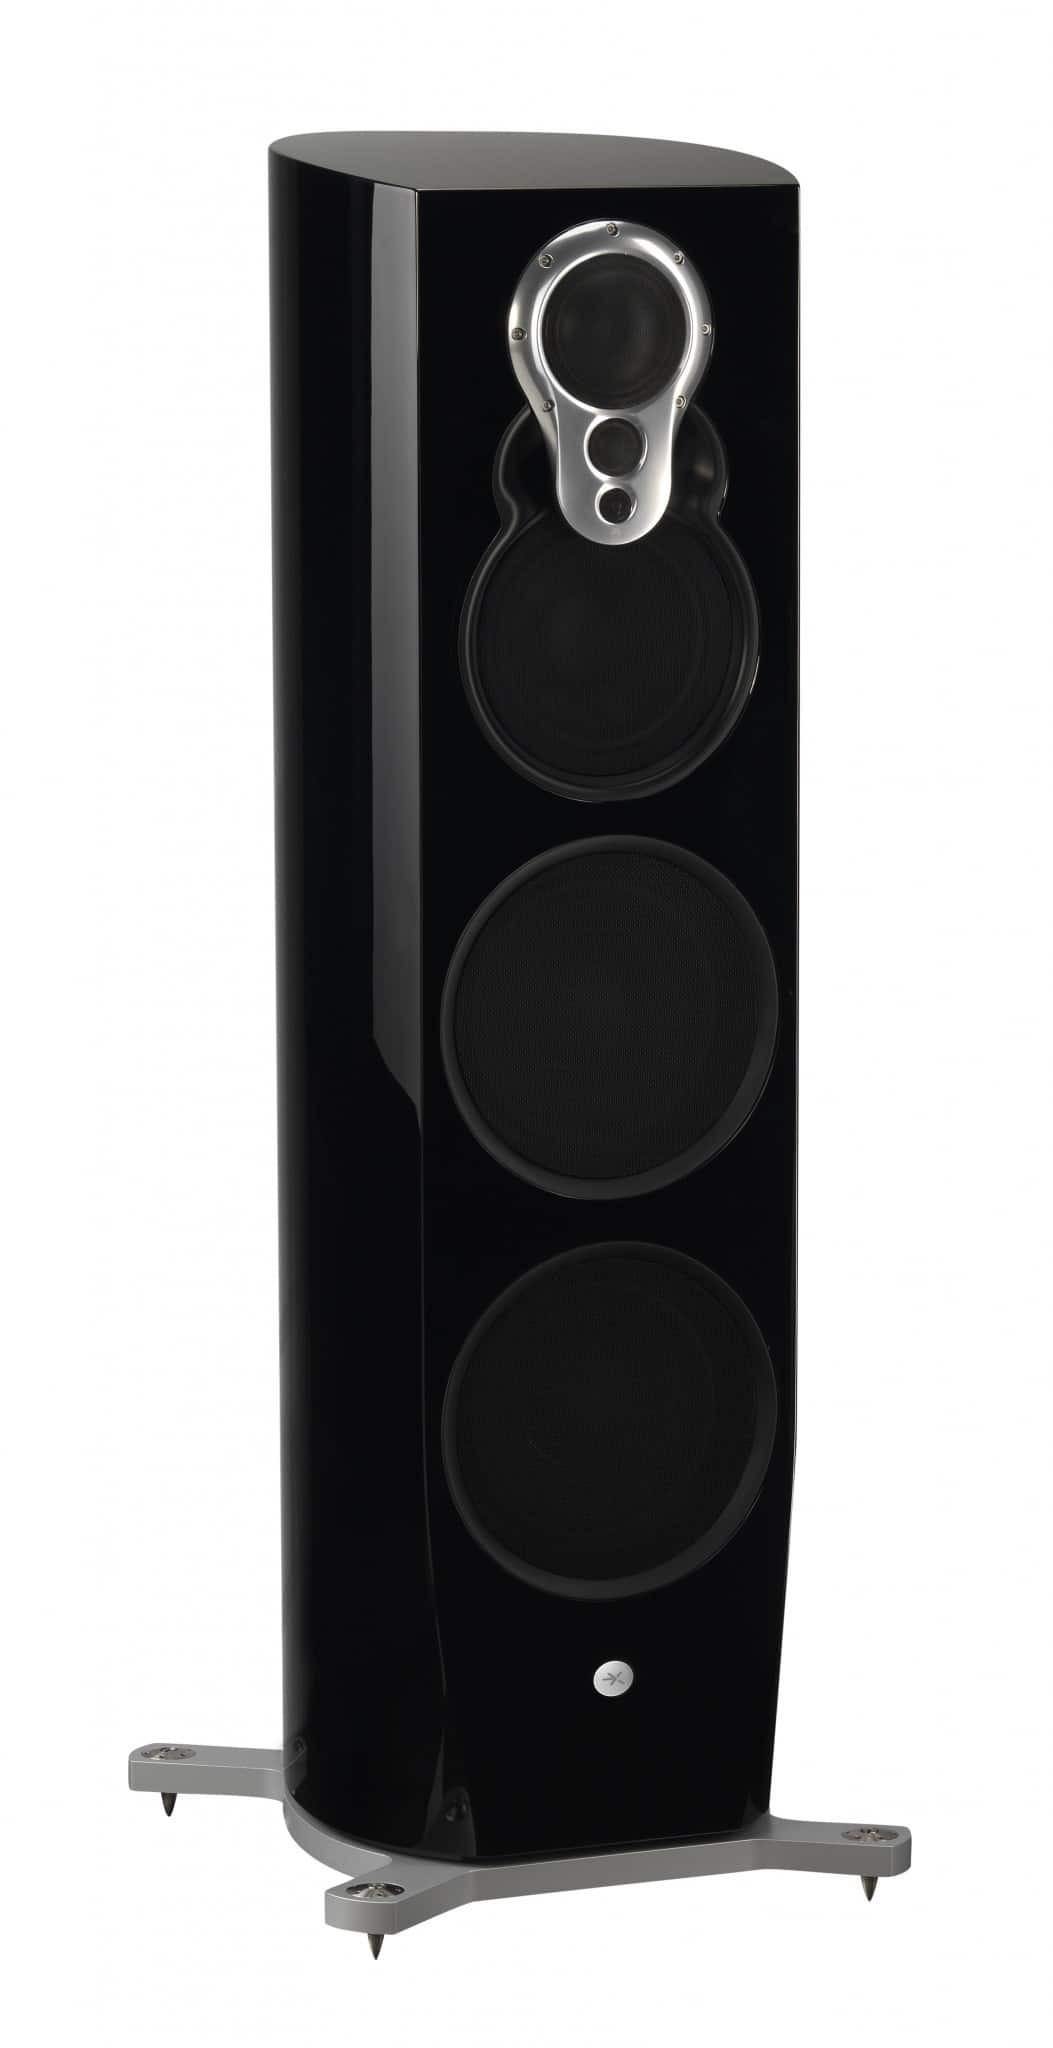 linn launches klimax 350 loudspeaker and klimax exaktbox. Black Bedroom Furniture Sets. Home Design Ideas